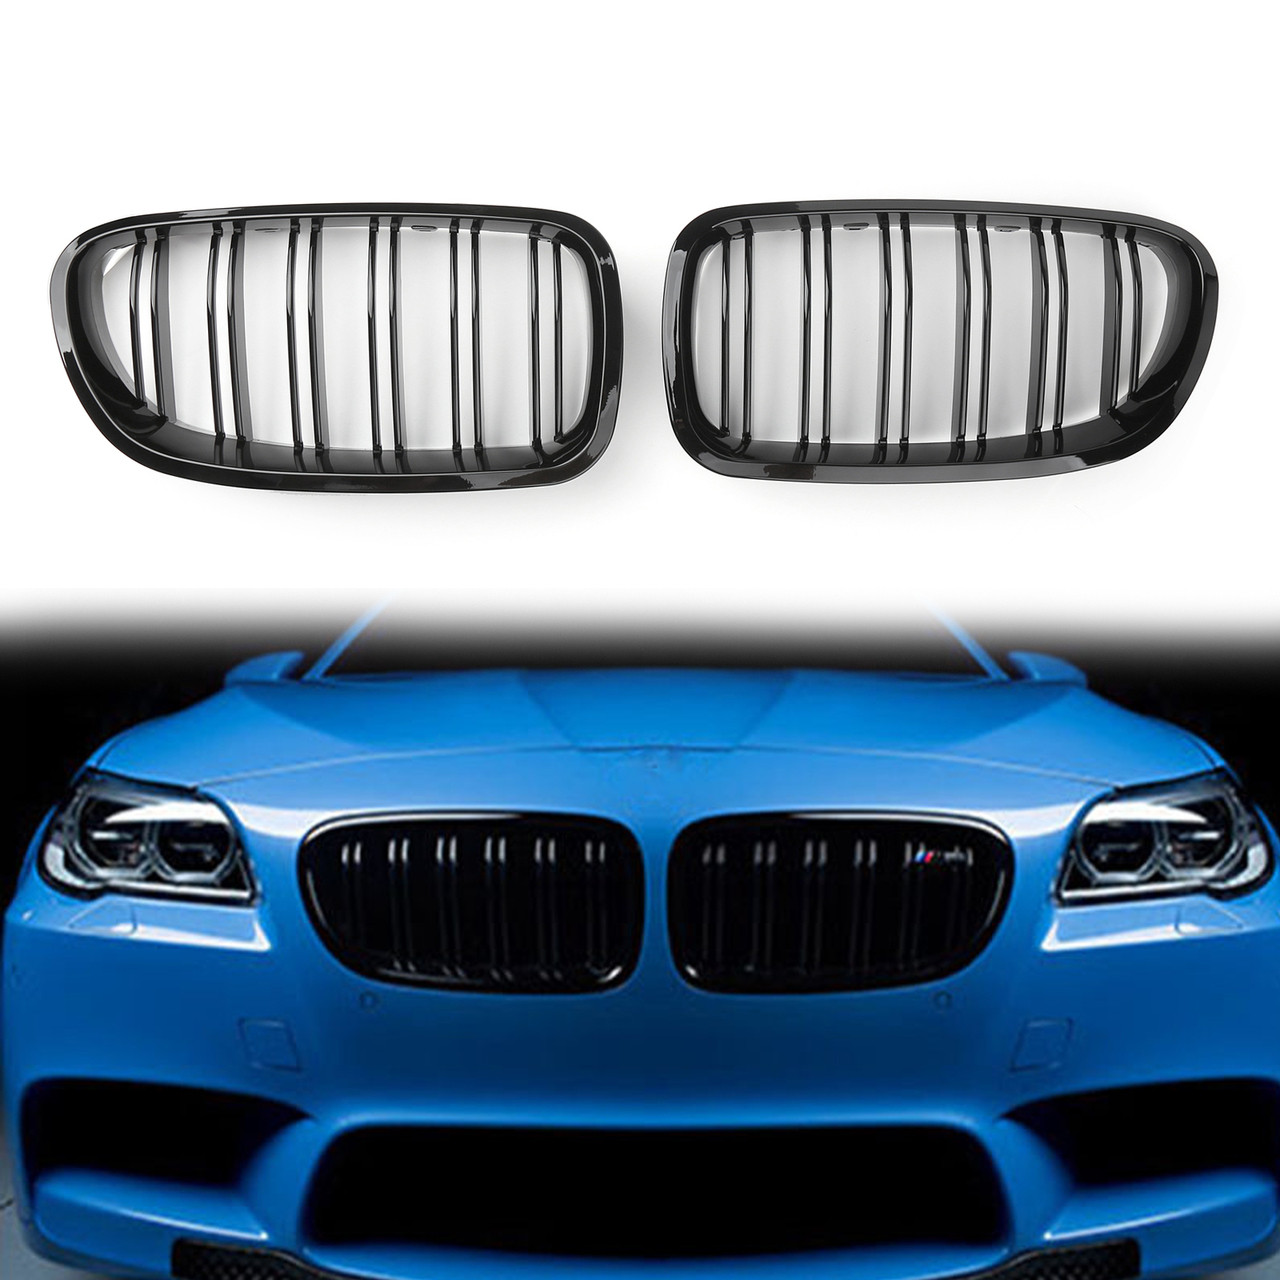 Black Front Kidney Hood Grille Grill For Bmw F10 F11 F18 5 Series 2010 2016 Uk